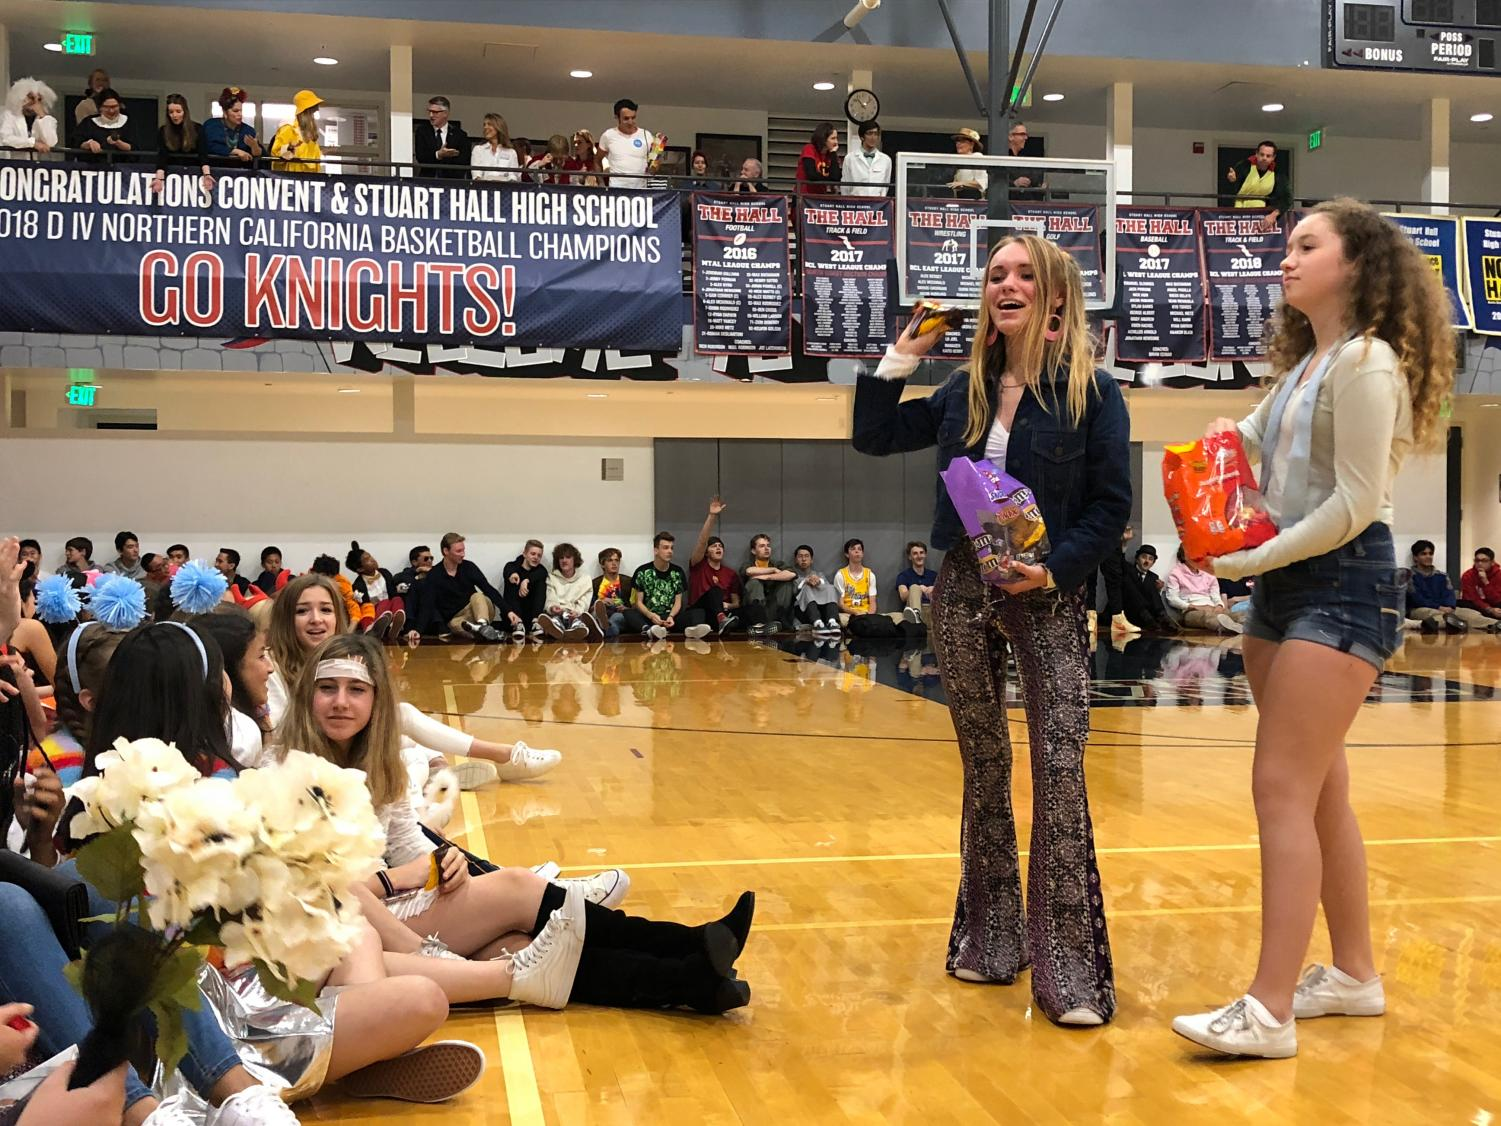 Sophomore and freshman class representatives Tabitha Parent and Mackenna Moslander throw candy to students during the co-ed Halloween costume contest. The Convent & Stuart Hall student council led the assembly at the Pine/Octavia campus.